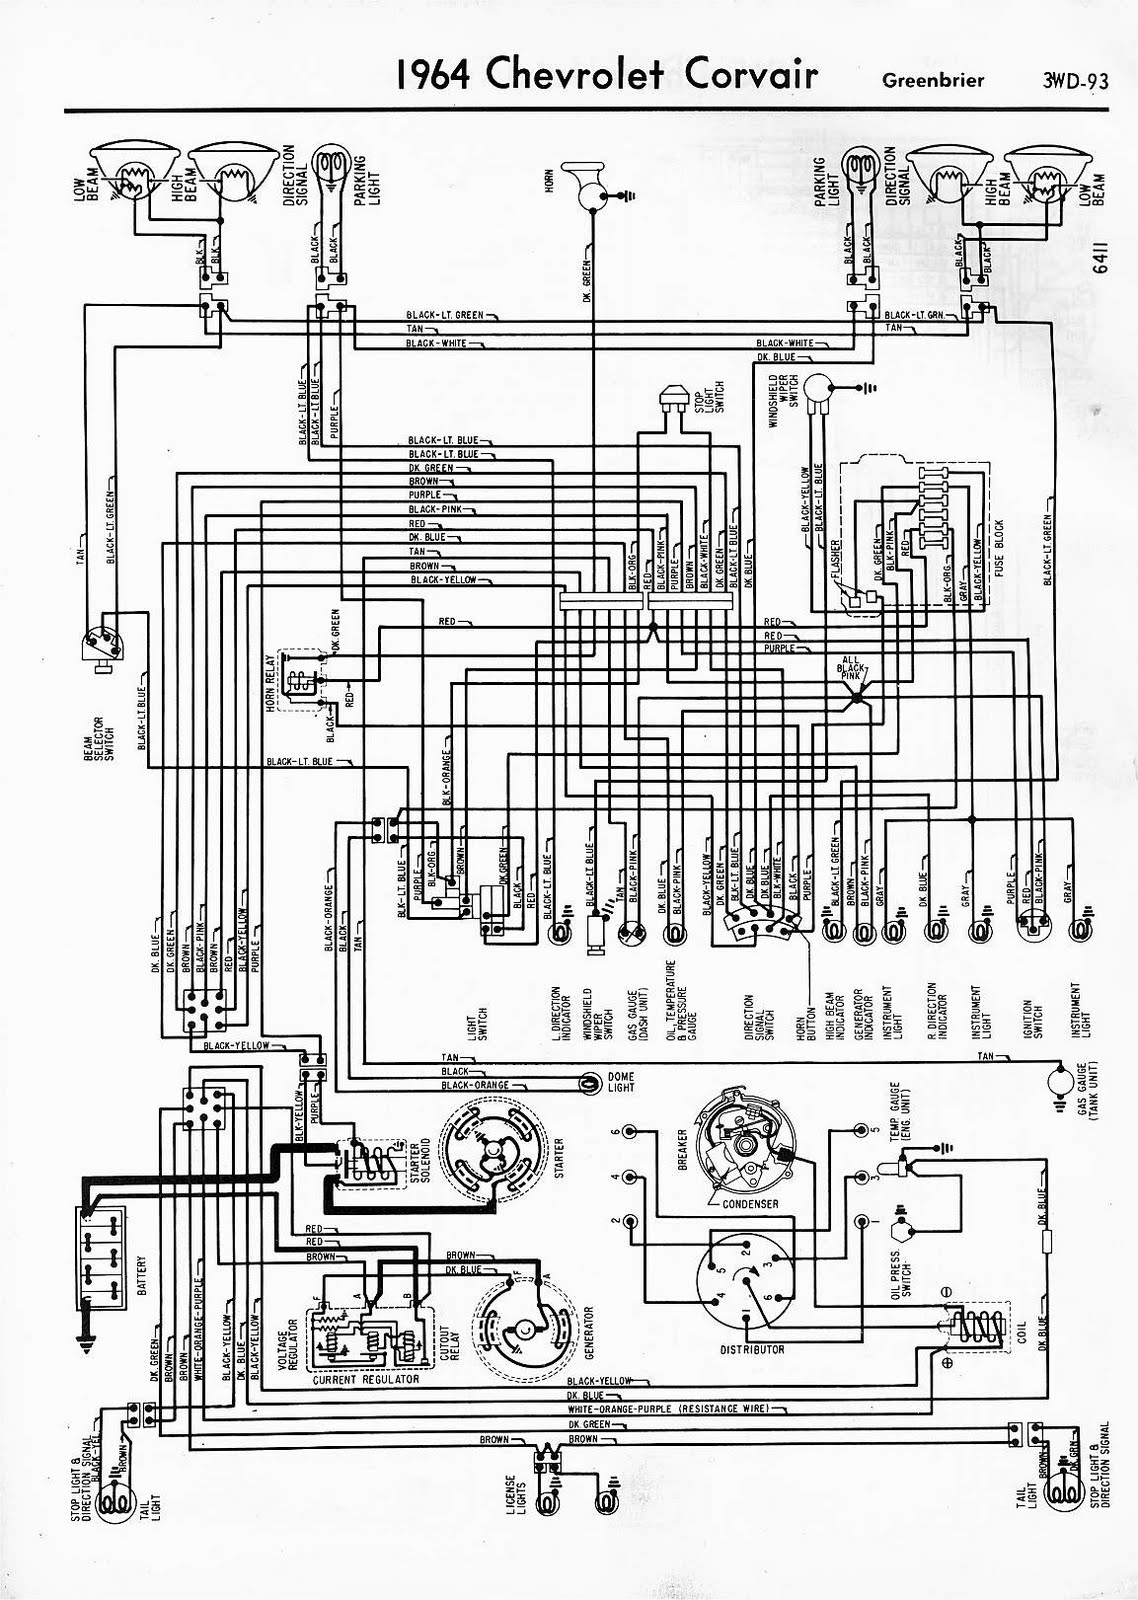 1962 C10 Pickup Wiring Diagram Corvair Wiper Library Ford Truck Starting Know About U2022 1963